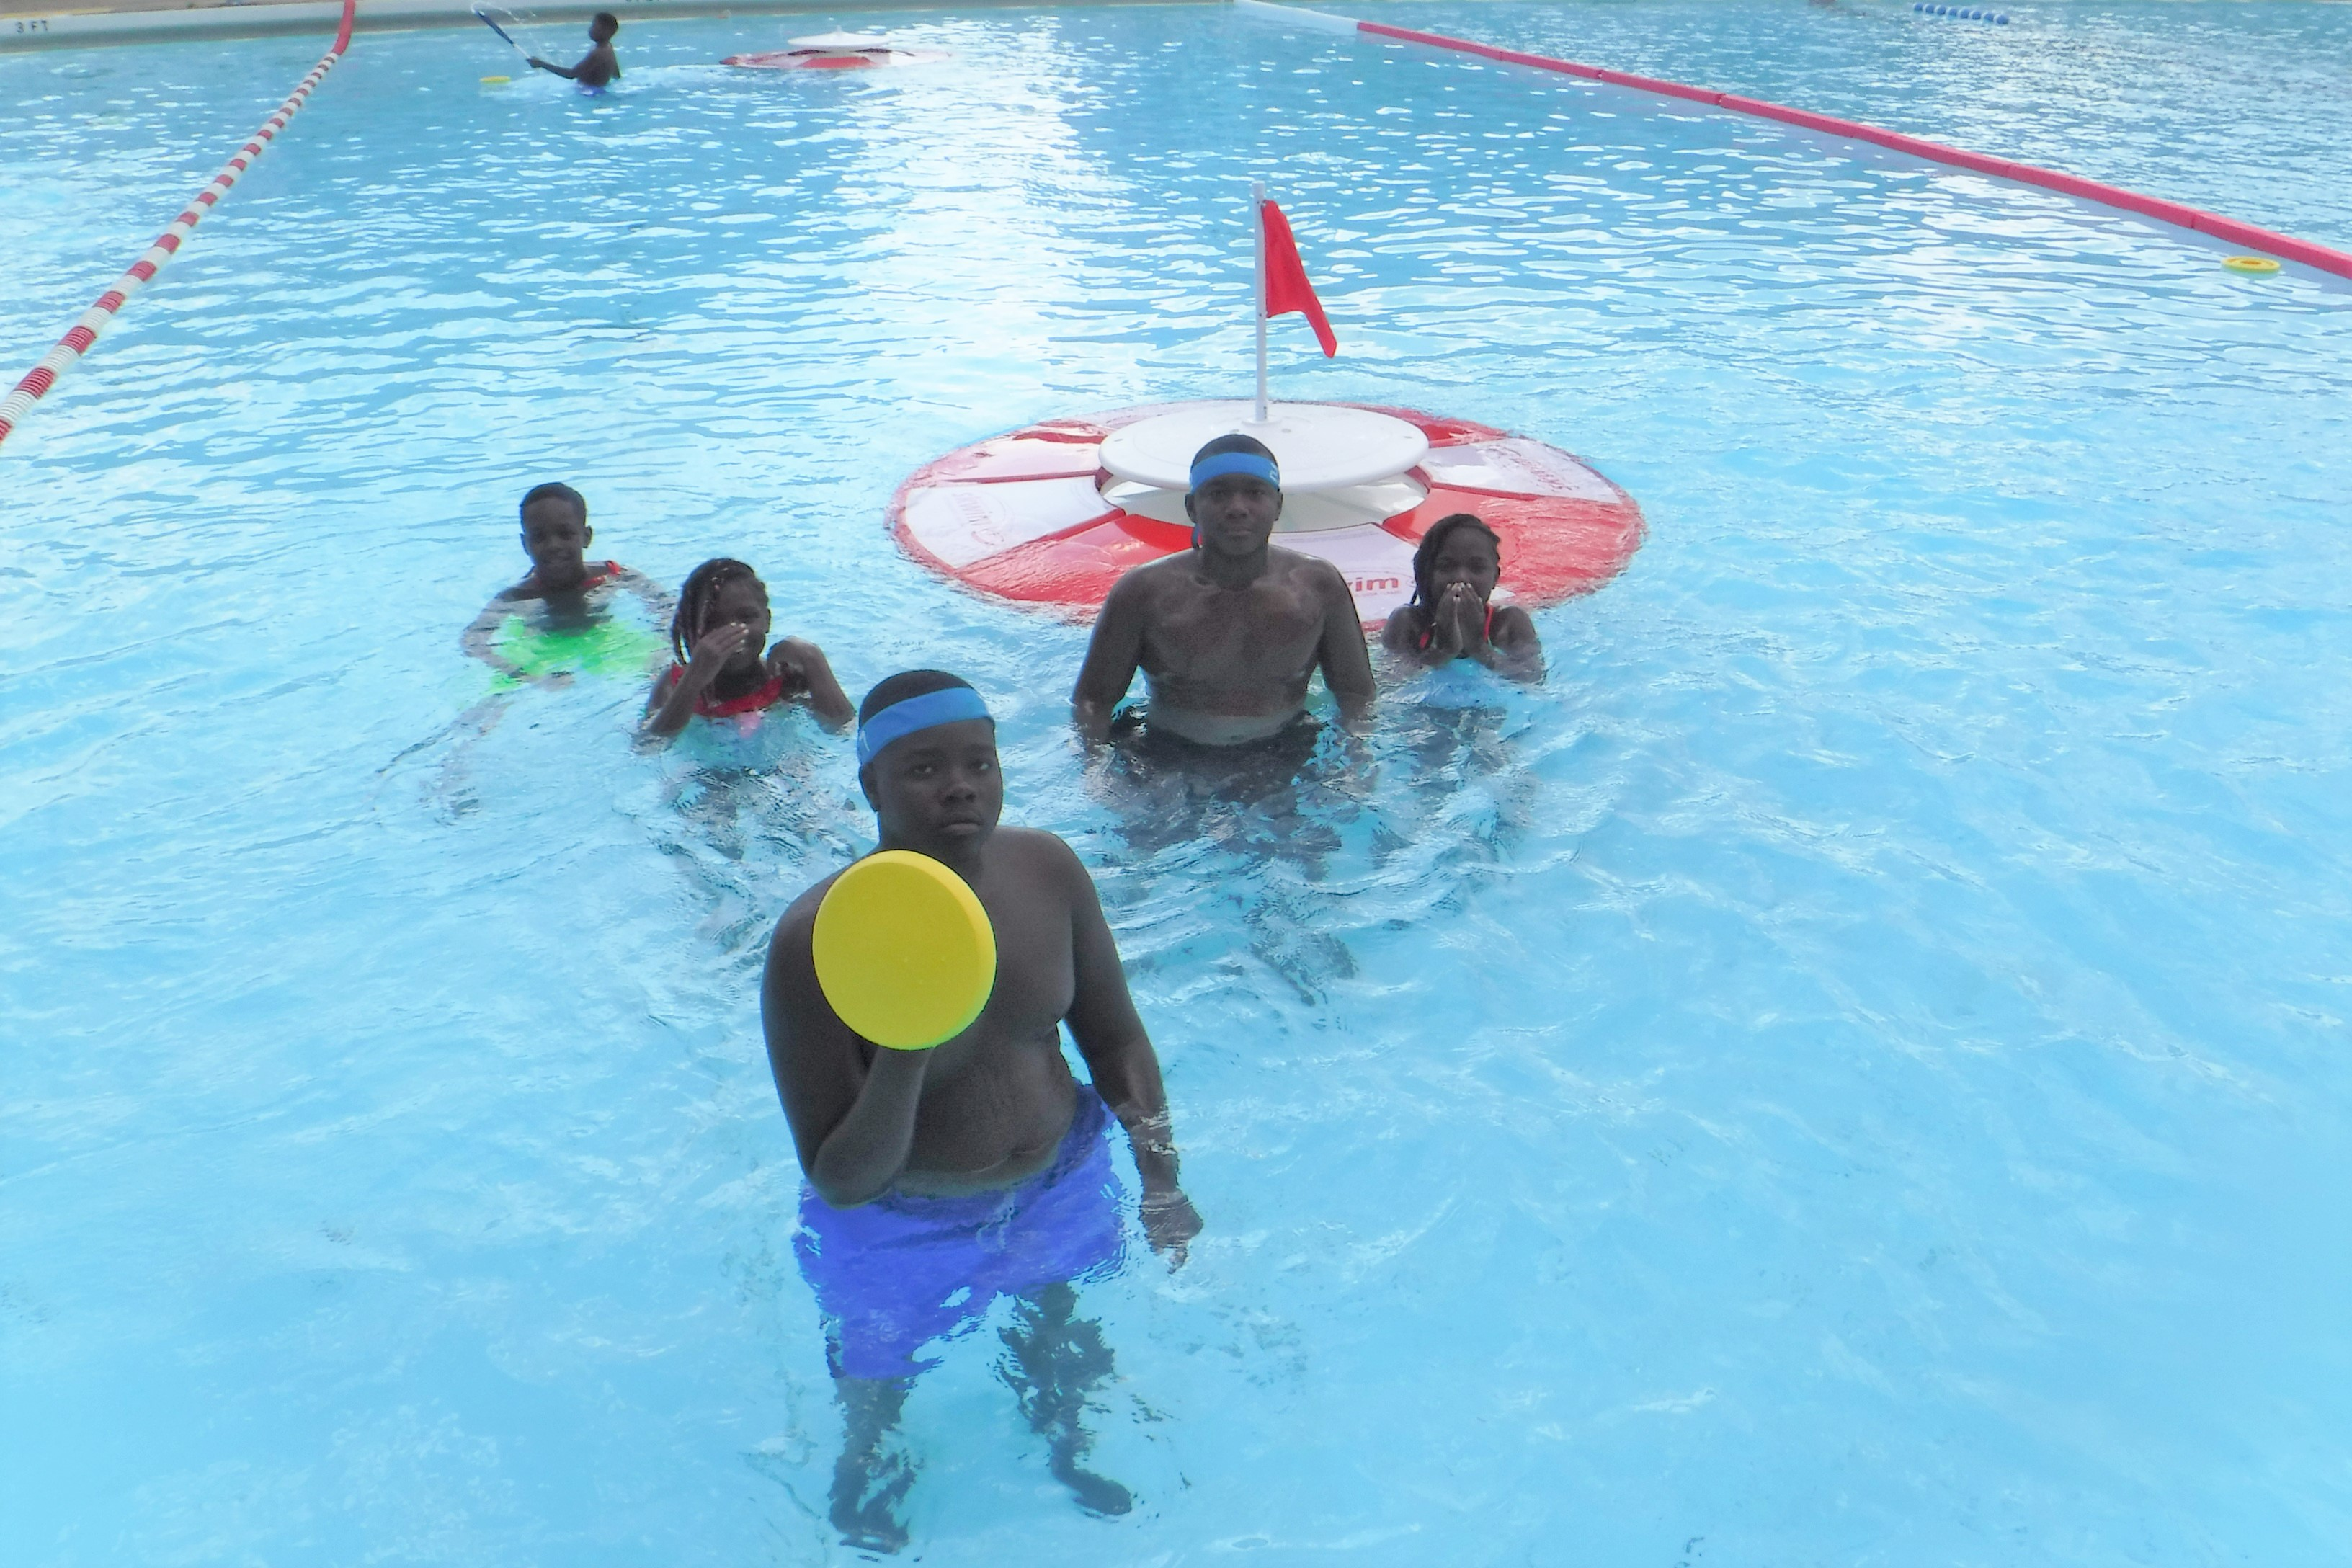 Kids, older and younger, as well as adults, all are able to play SKWIM together. Photo from Citiparks Ammon pool shows how we can just use part of the water for the game.